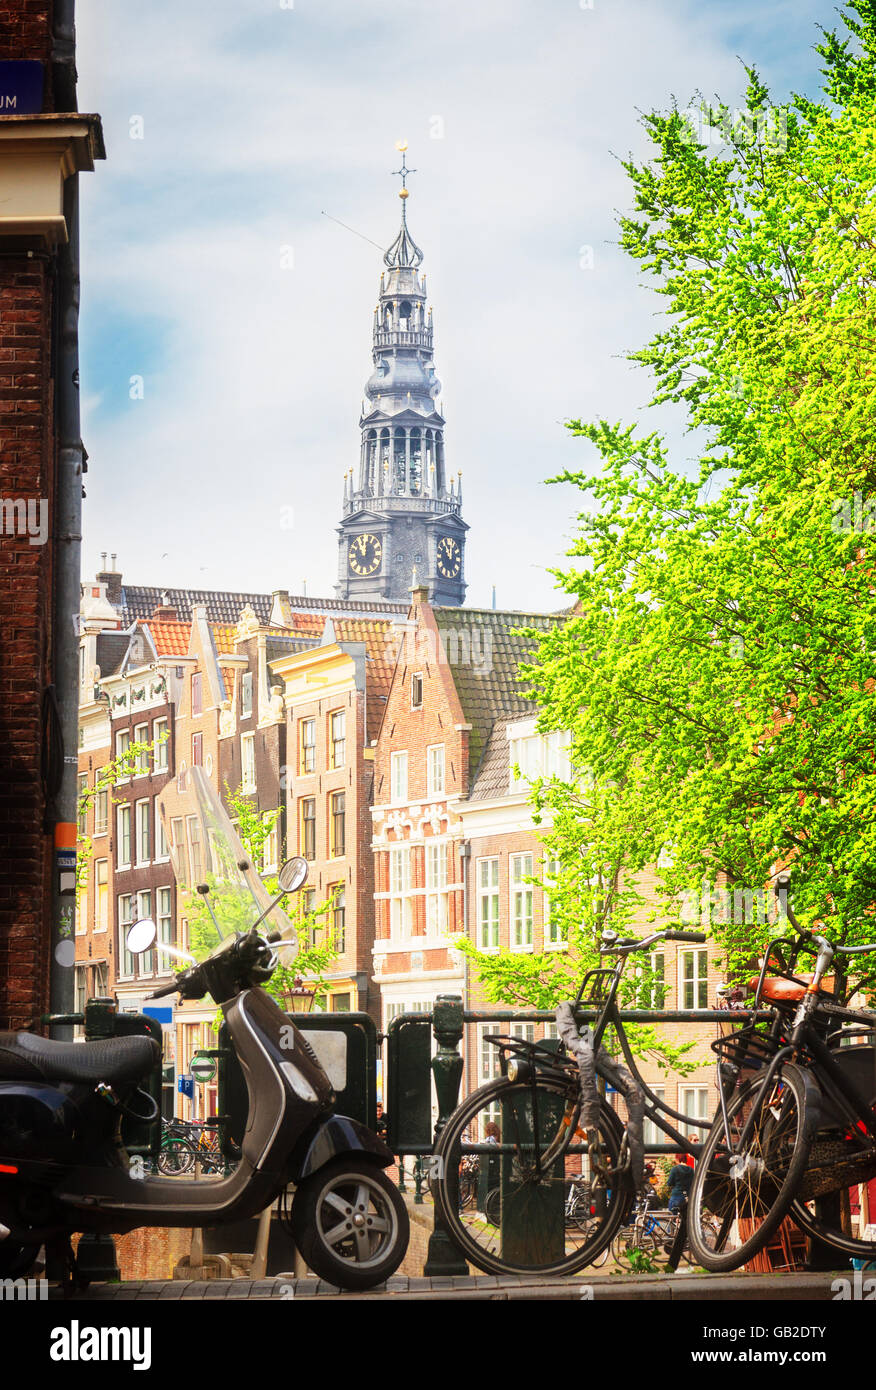 canal ring, Amsterdam - Stock Image